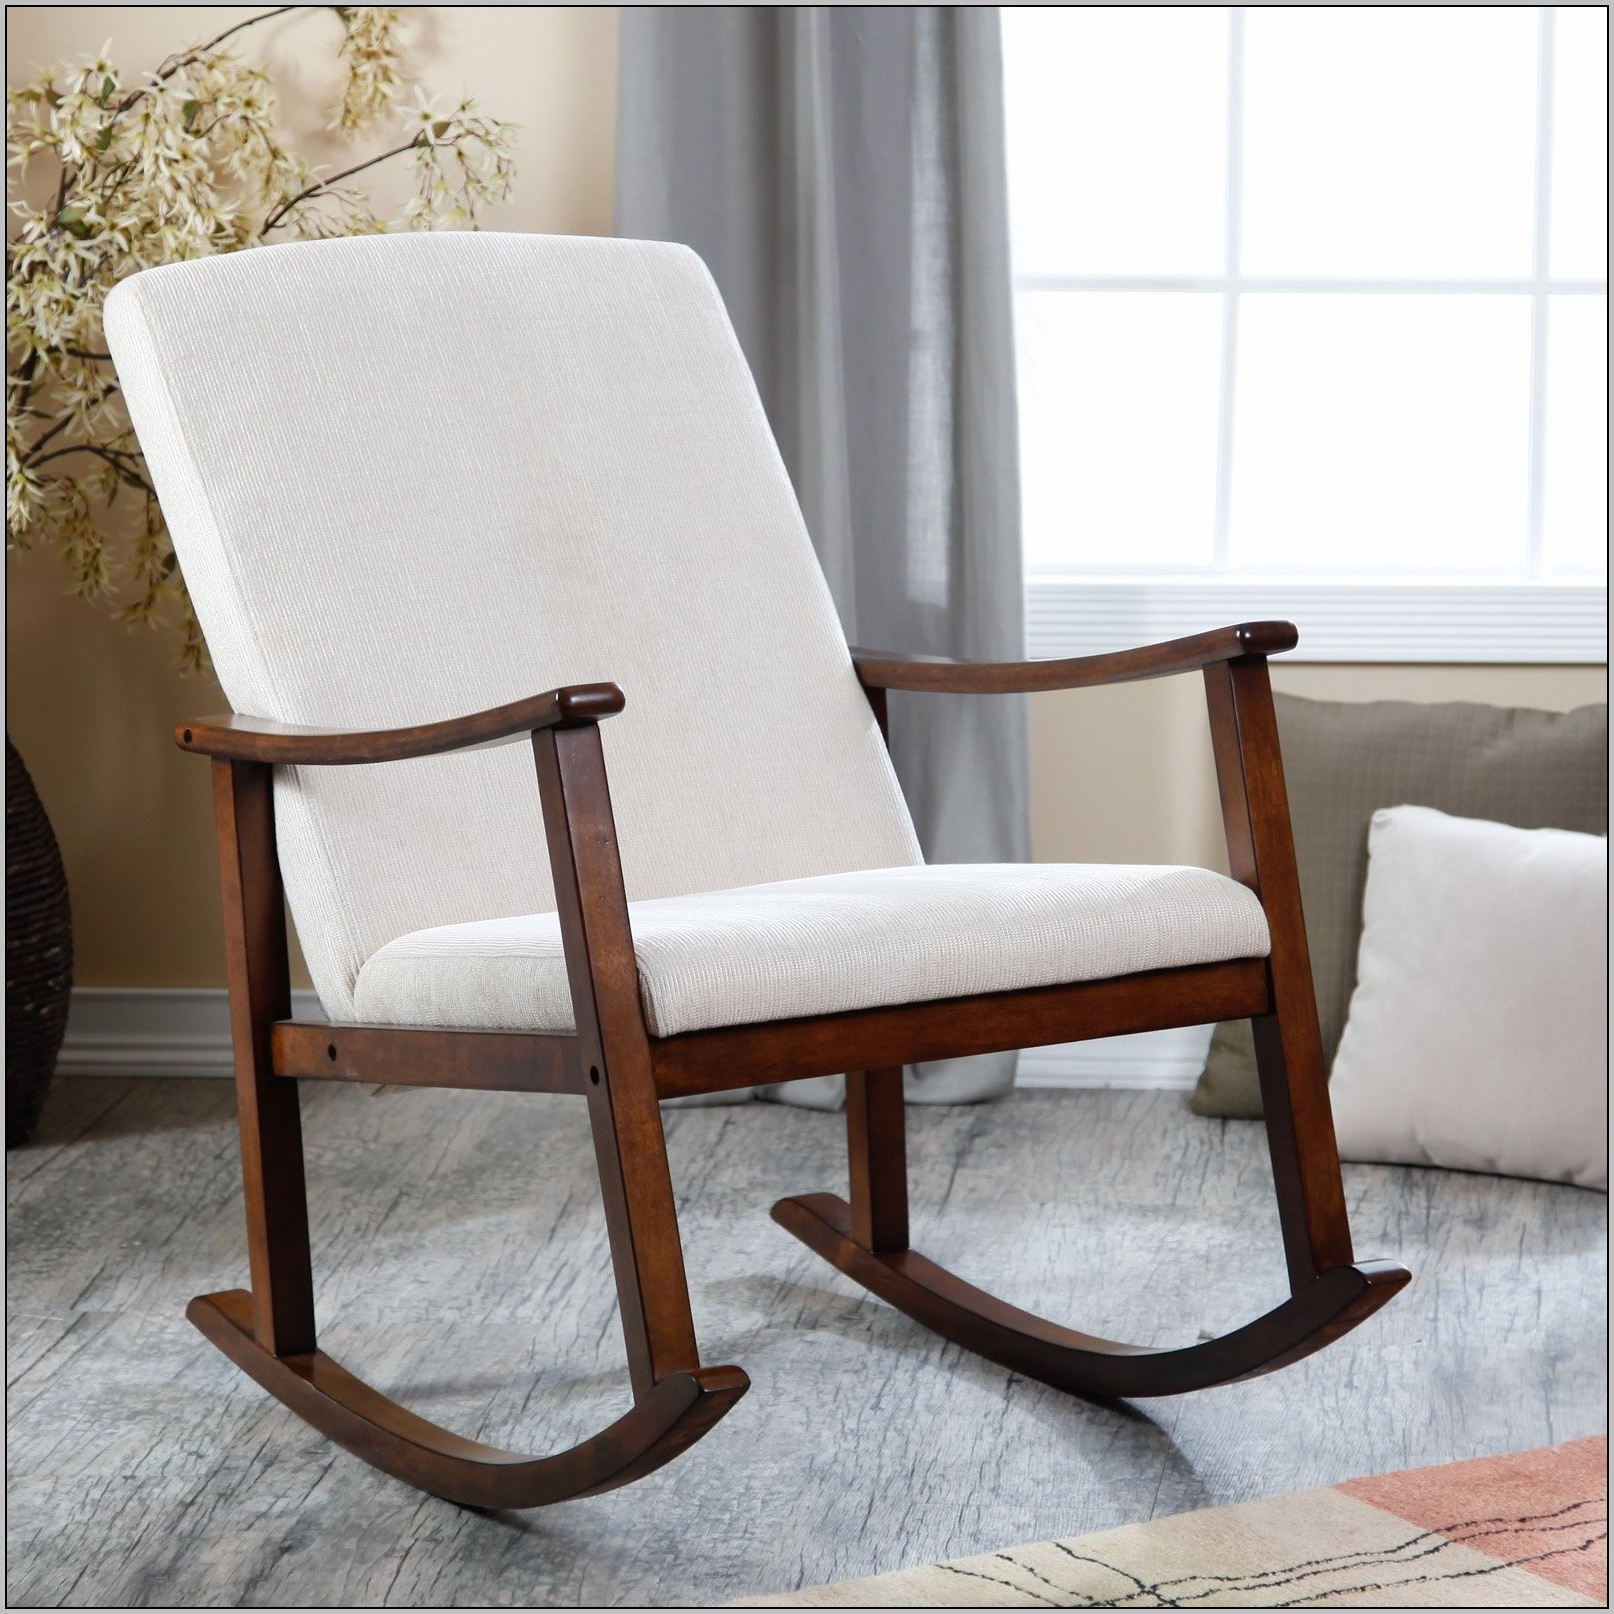 Most Current Upholstered Rocking Chairs Pertaining To Furniture Upholstered Rocking Chair And Ottoman Antique Chairs (View 20 of 20)